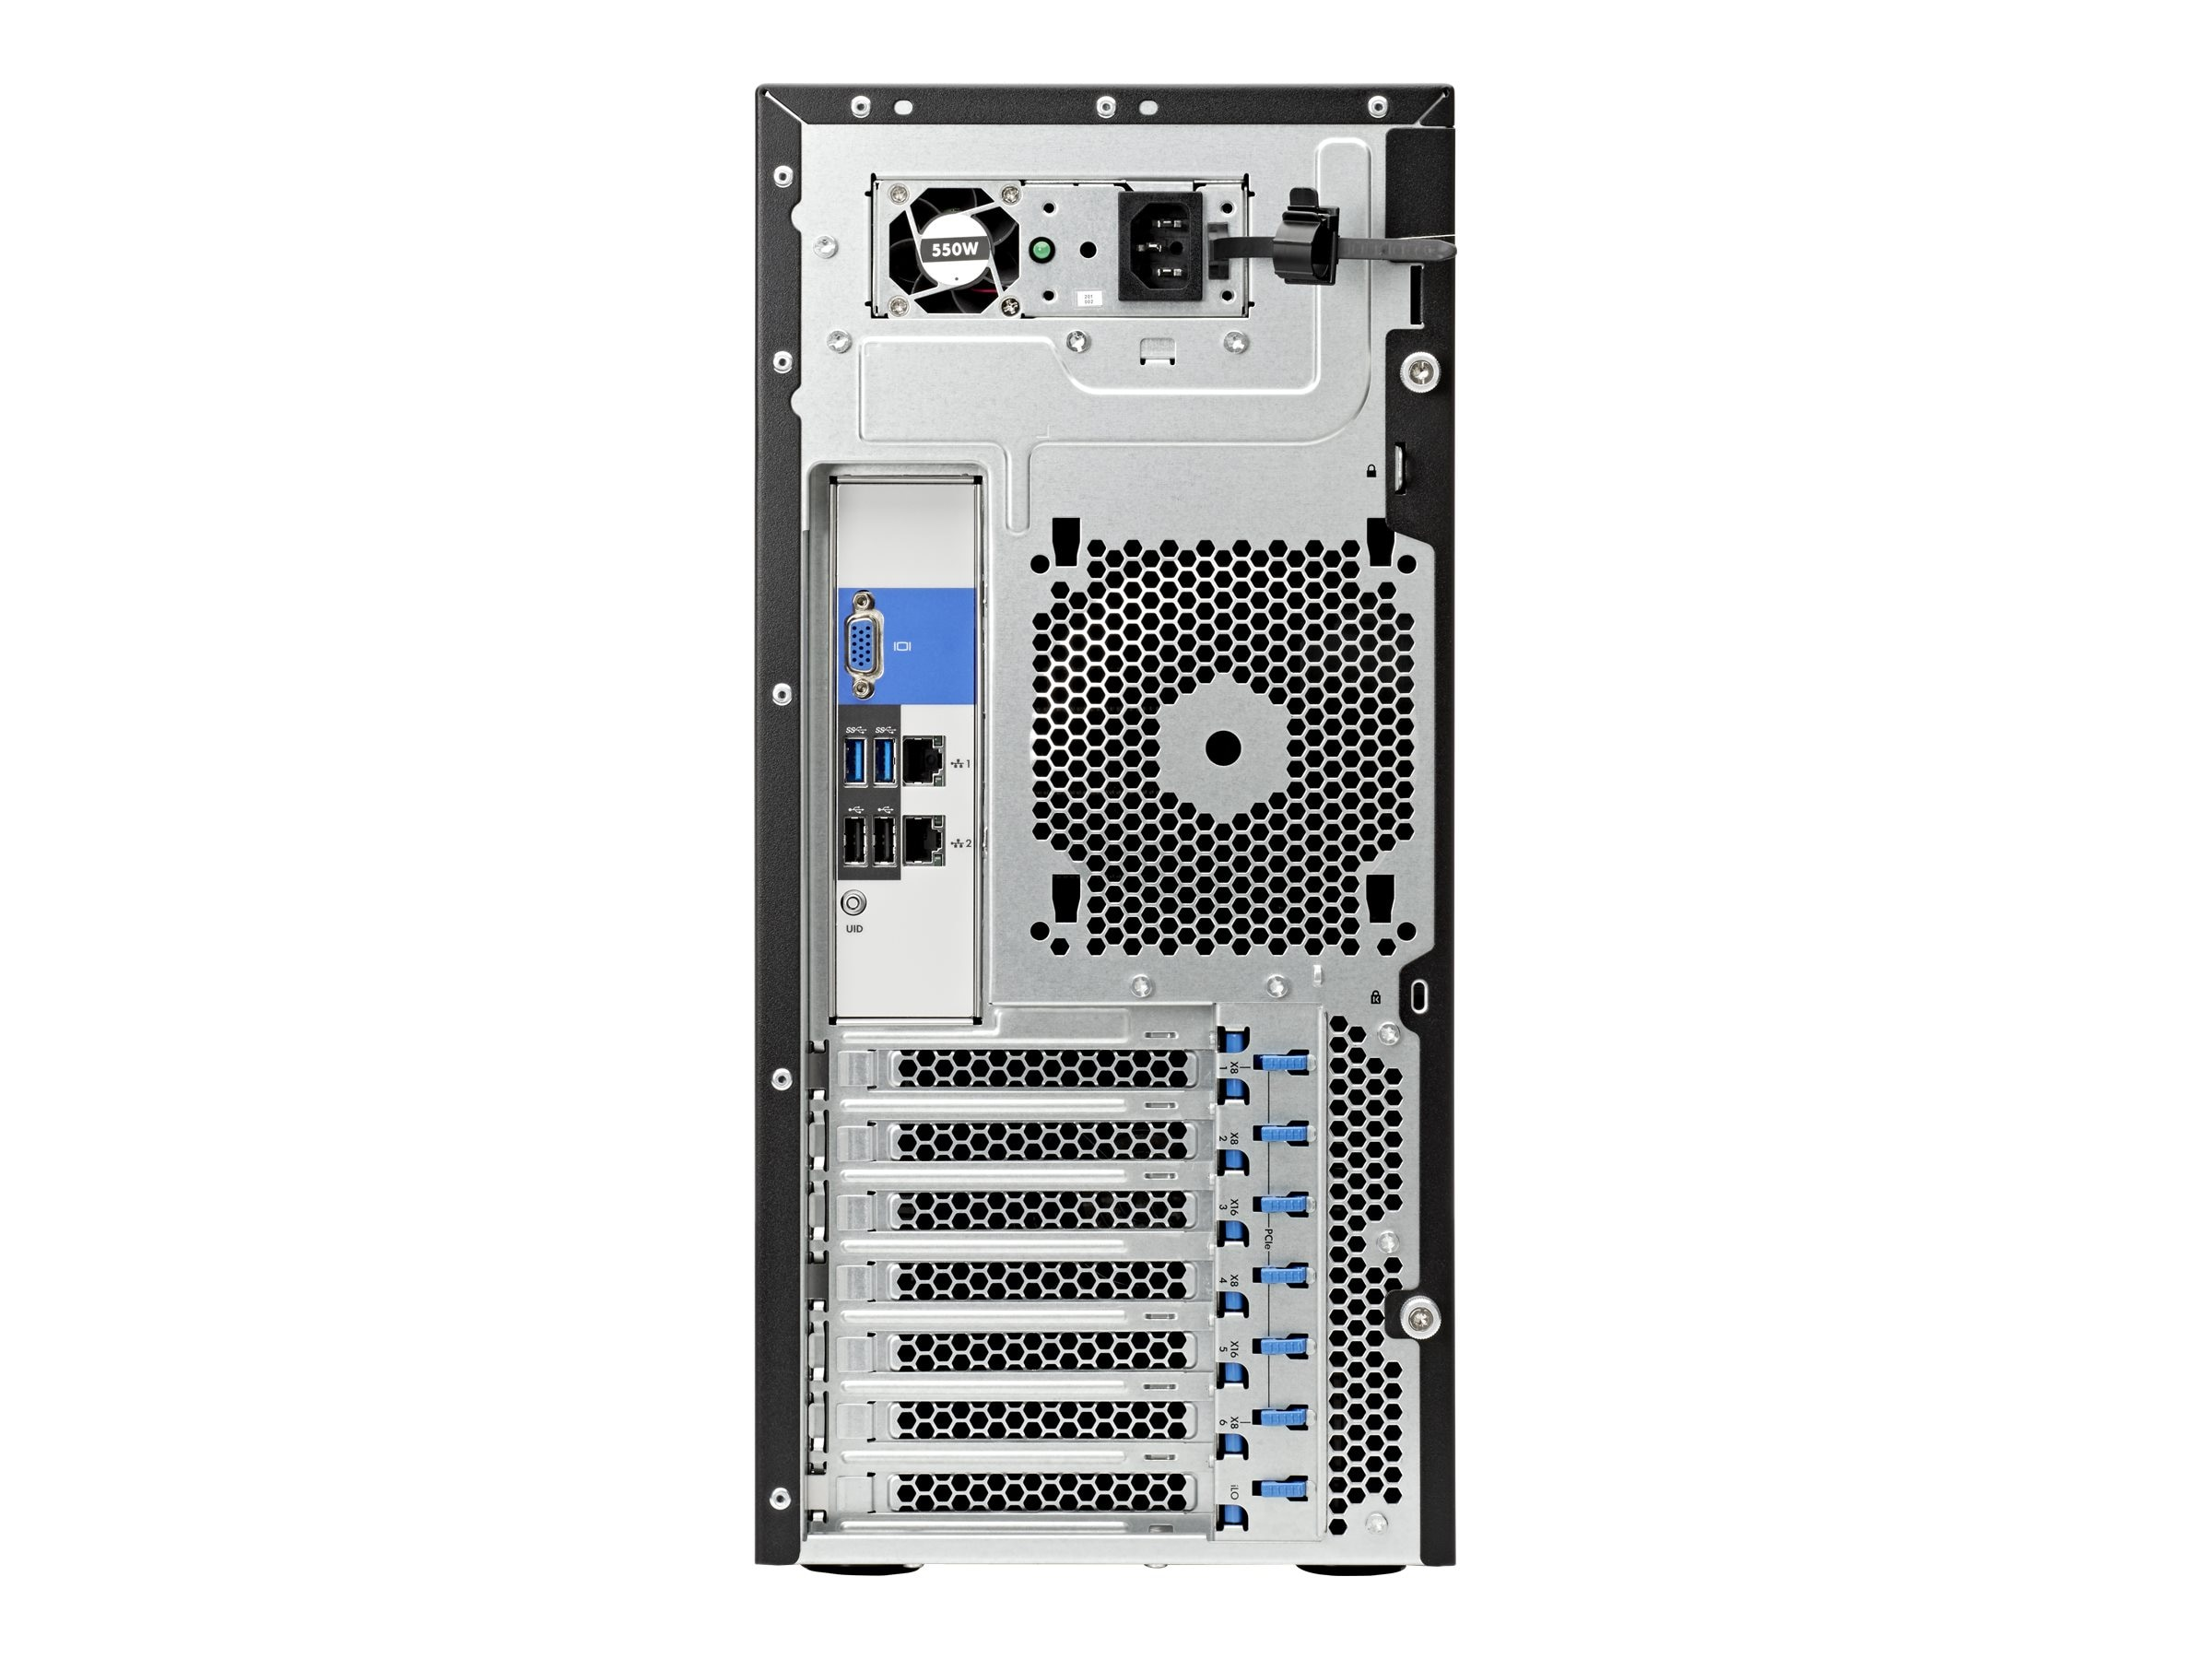 Hewlett Packard Enterprise 834606-001 Image 4